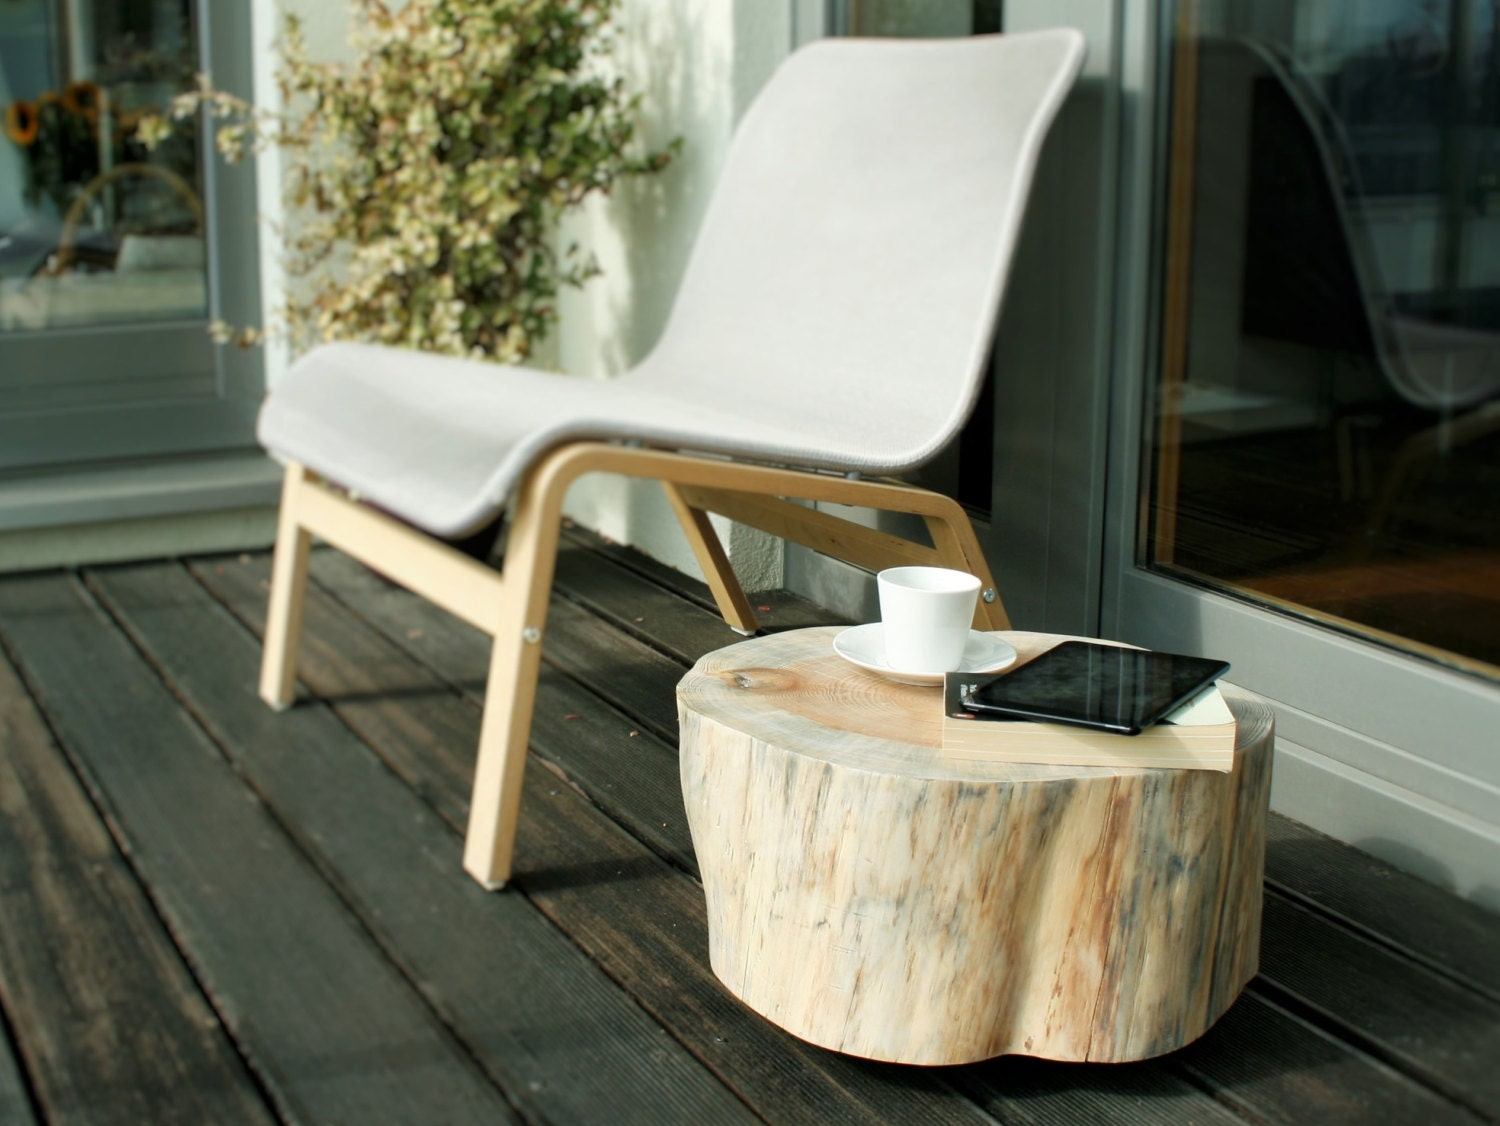 wooden stump table trunk side table pine tree trunk rolling casters white scandi style stump baumstamm tisch sgabello ceppo di legno